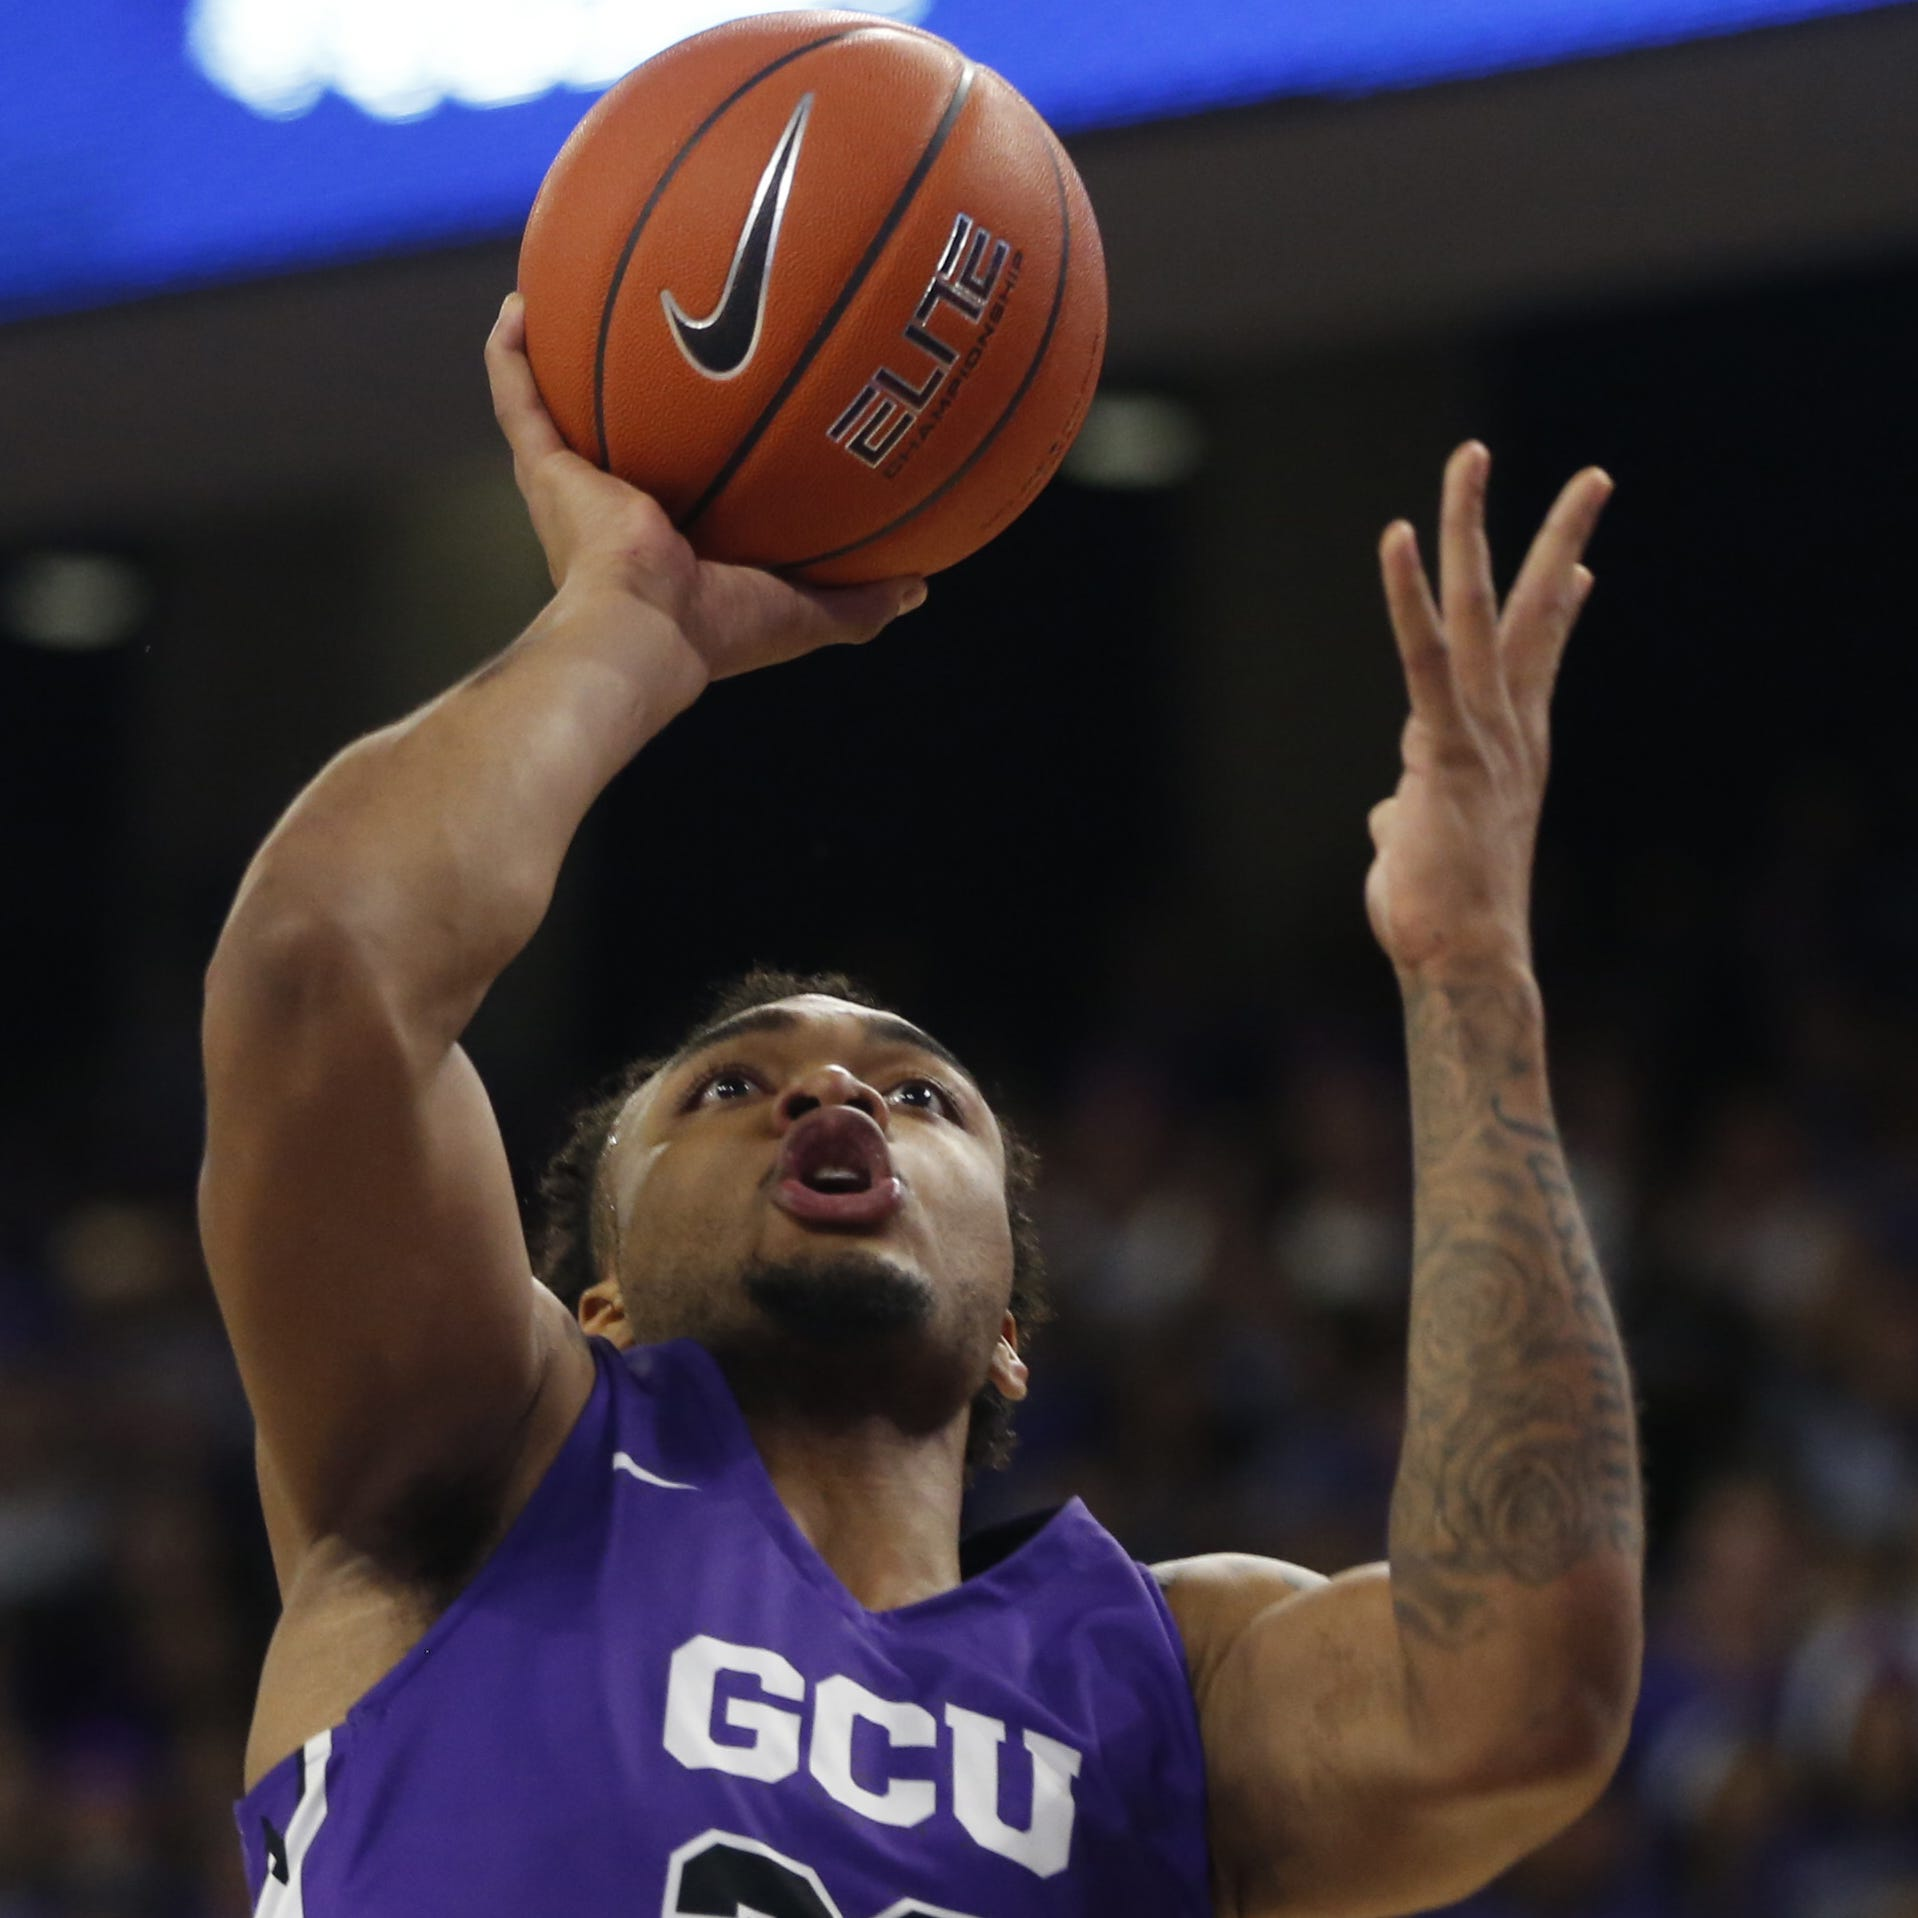 GCU one win away from NCAA tournament bid